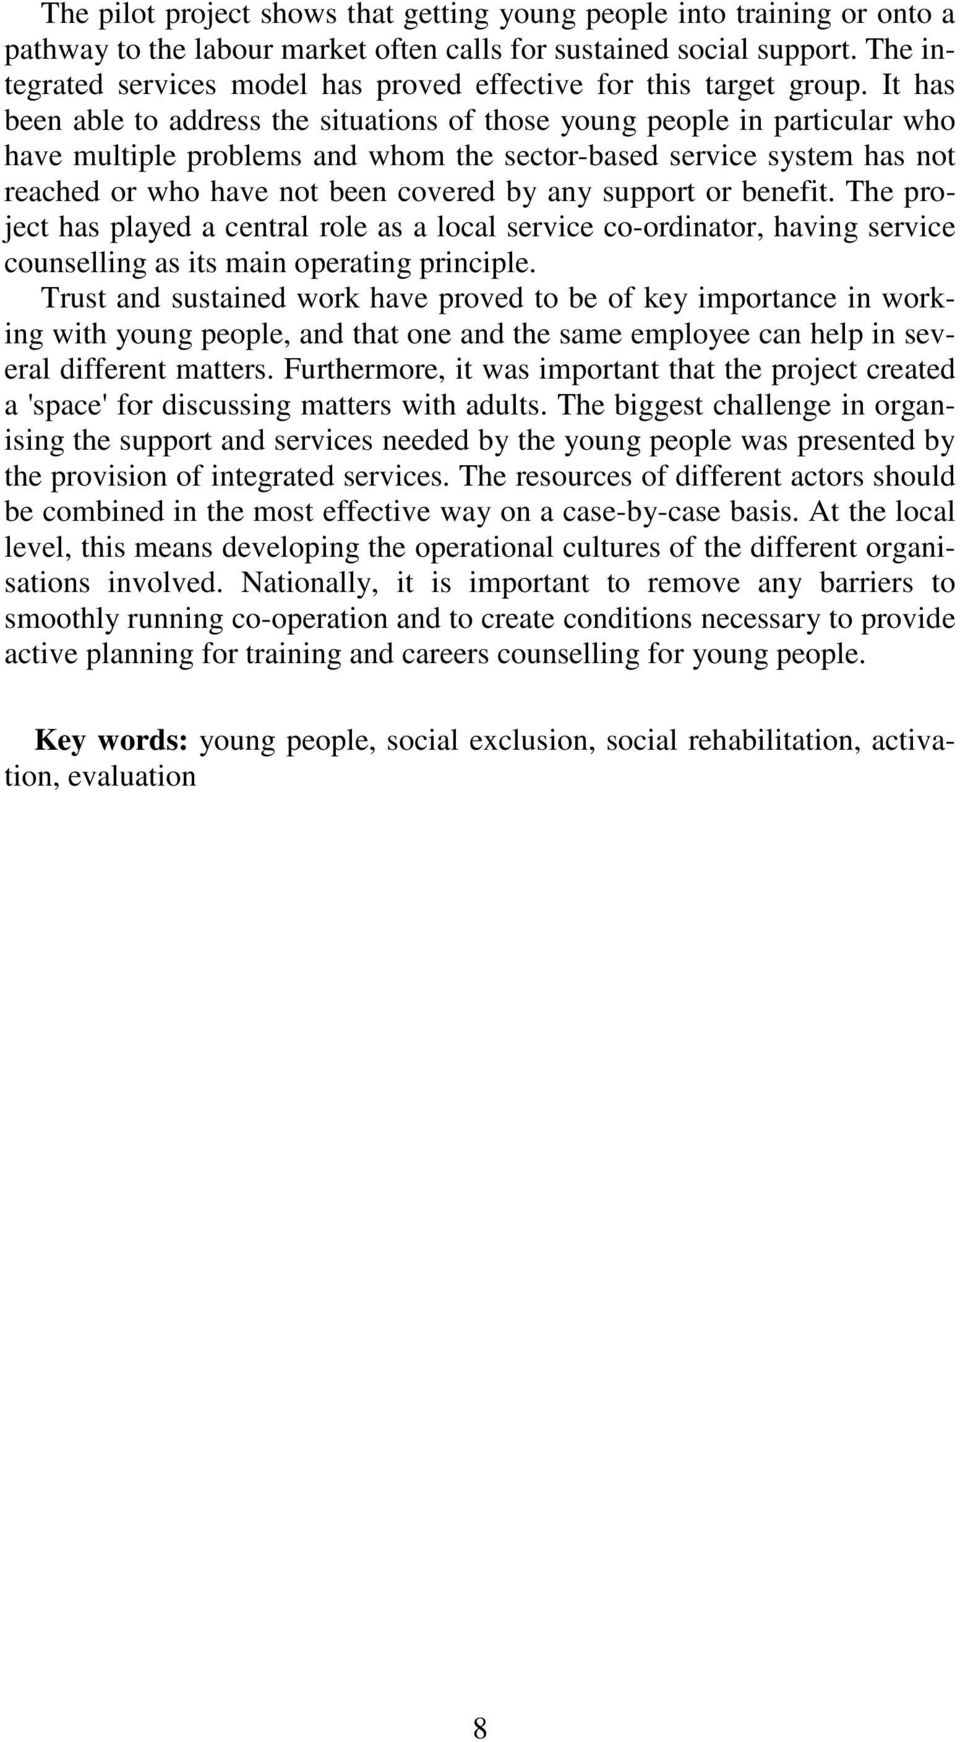 It has been able to address the situations of those young people in particular who have multiple problems and whom the sector-based service system has not reached or who have not been covered by any